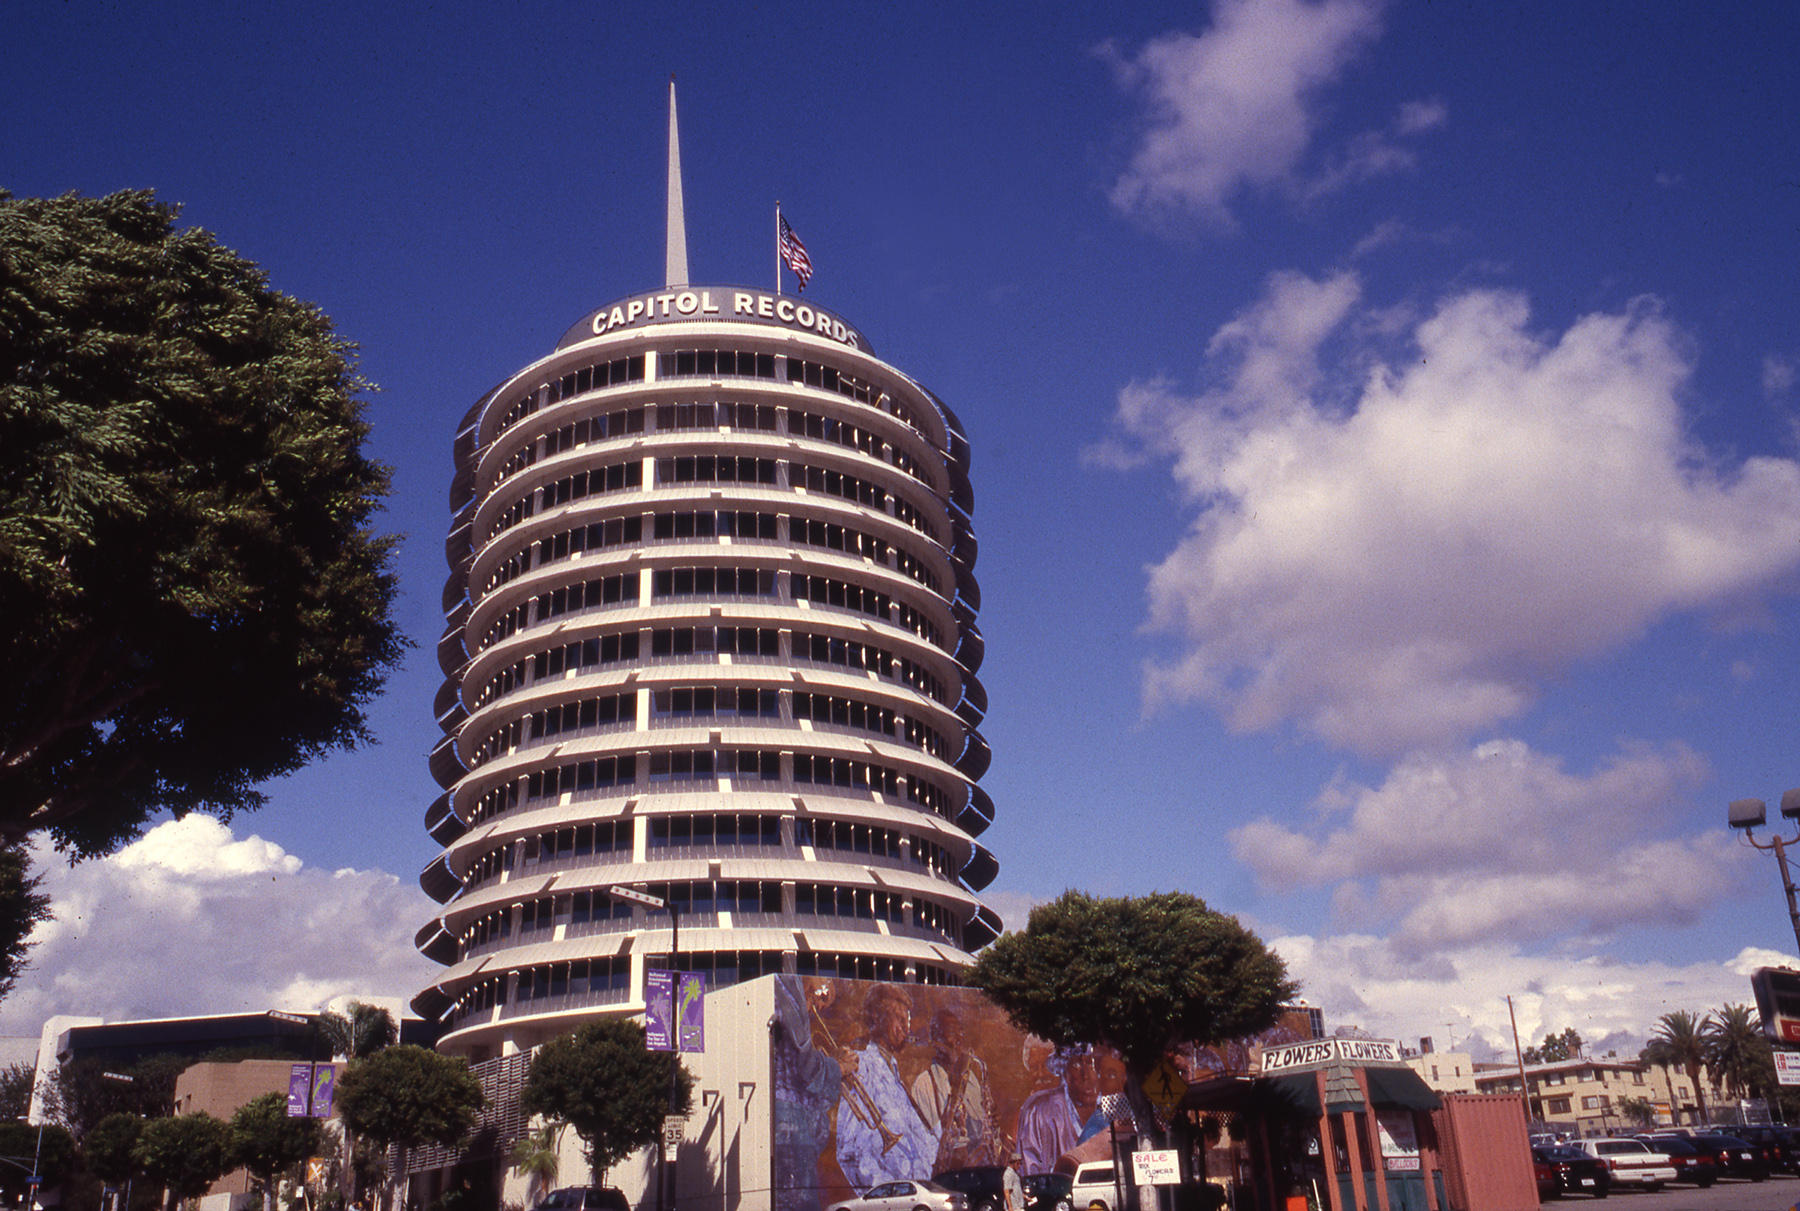 capitol records.485.JPG